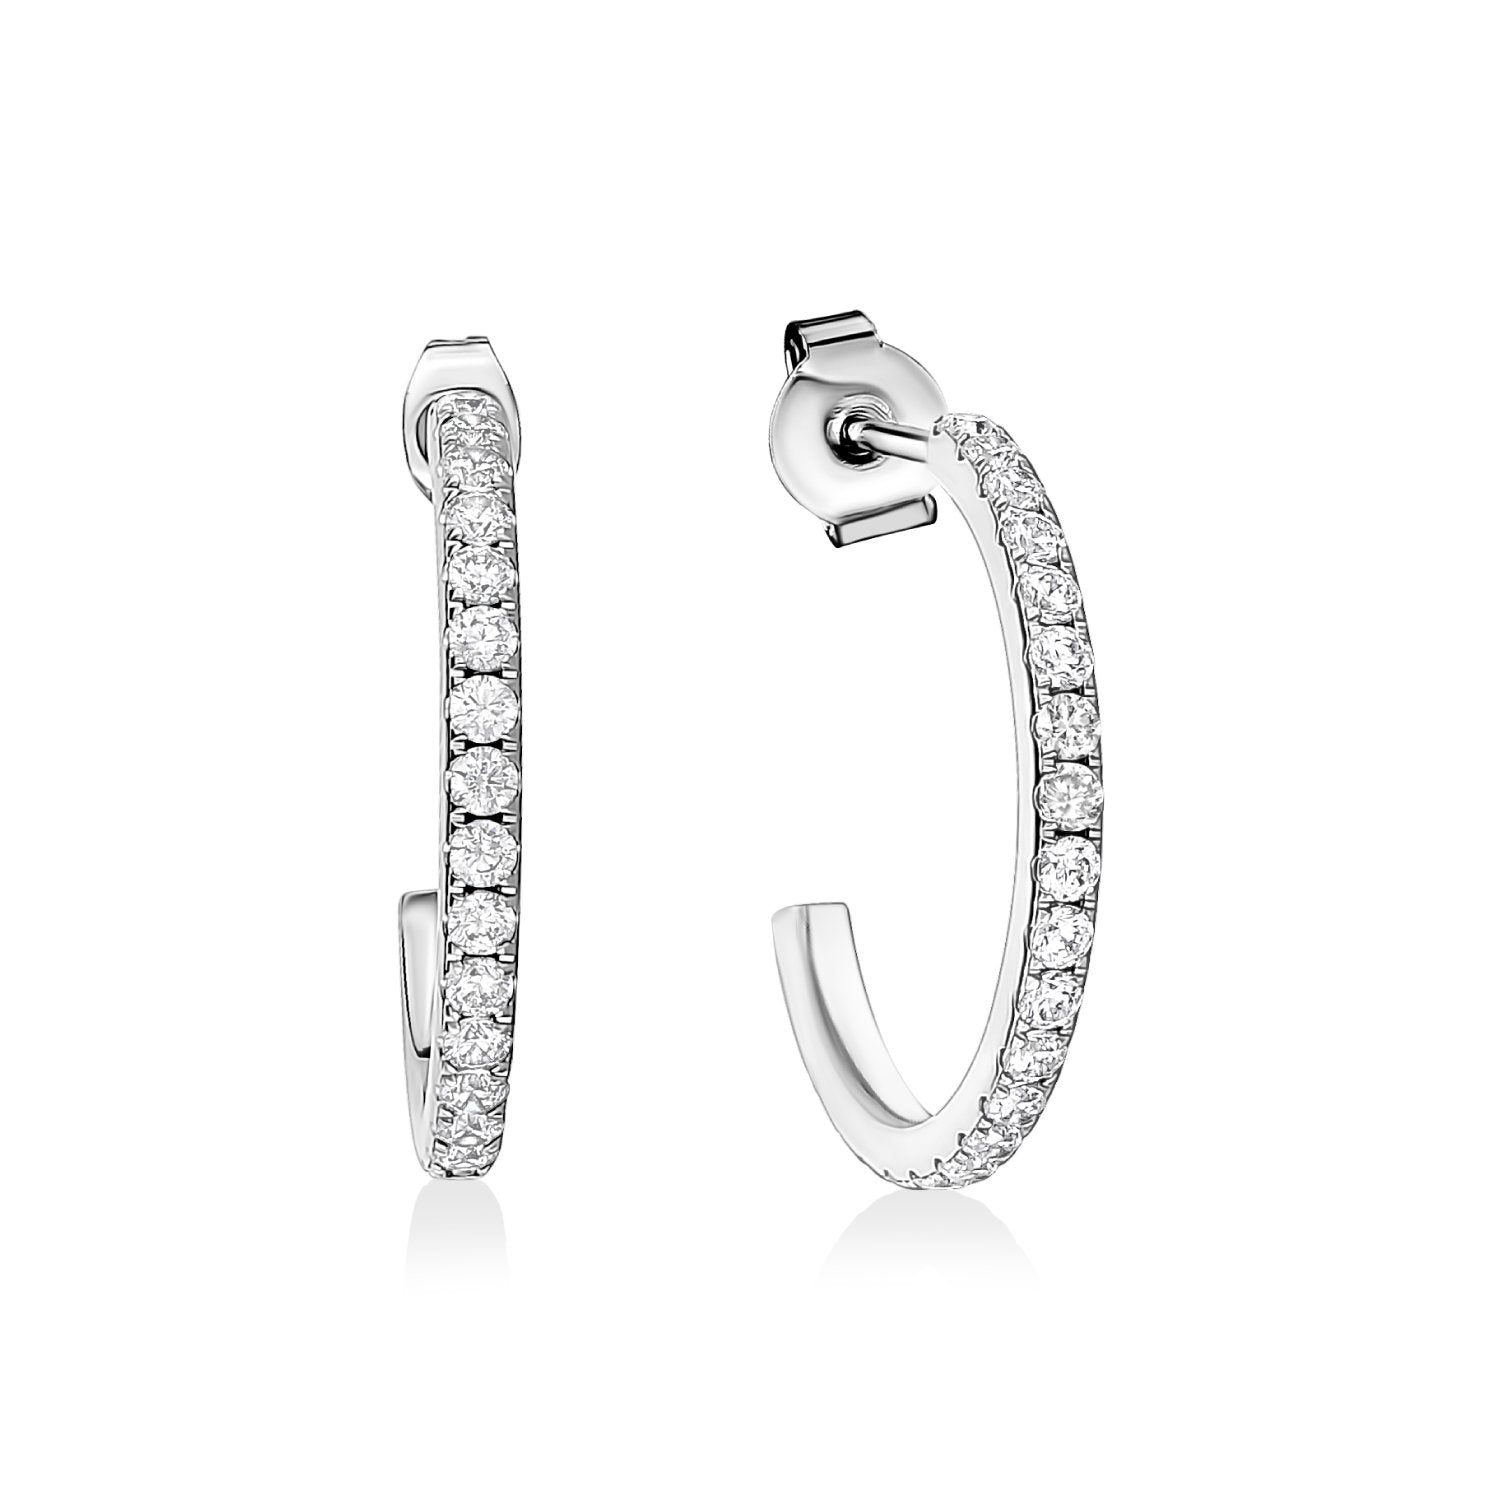 Earrings - 30mm Cubic Zircon Steel Hoop Earrings